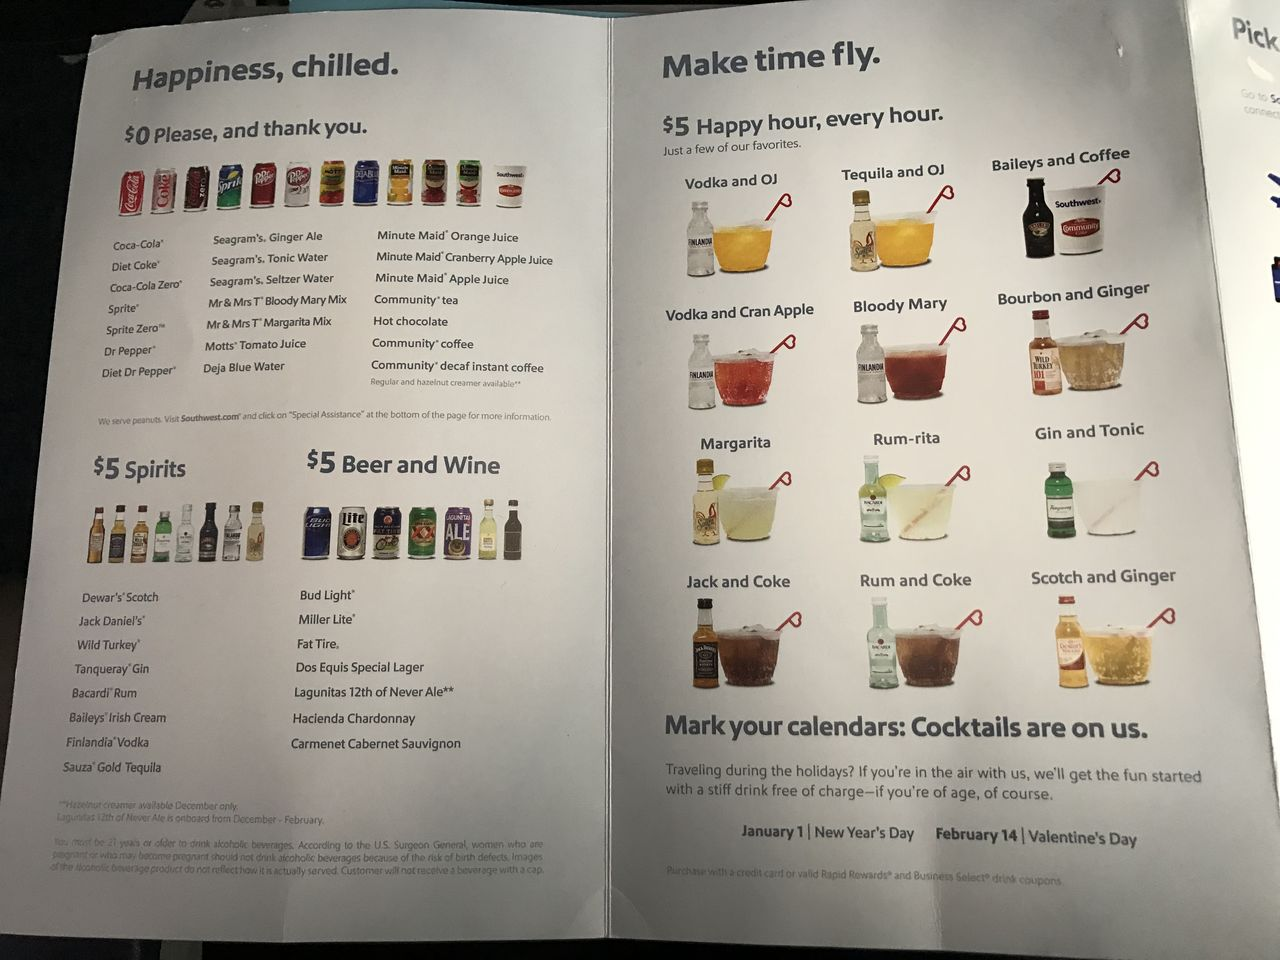 Southwest Airlines Fleet Boeing 737 800 Economy Cabin Onboard Beverages Services Menu